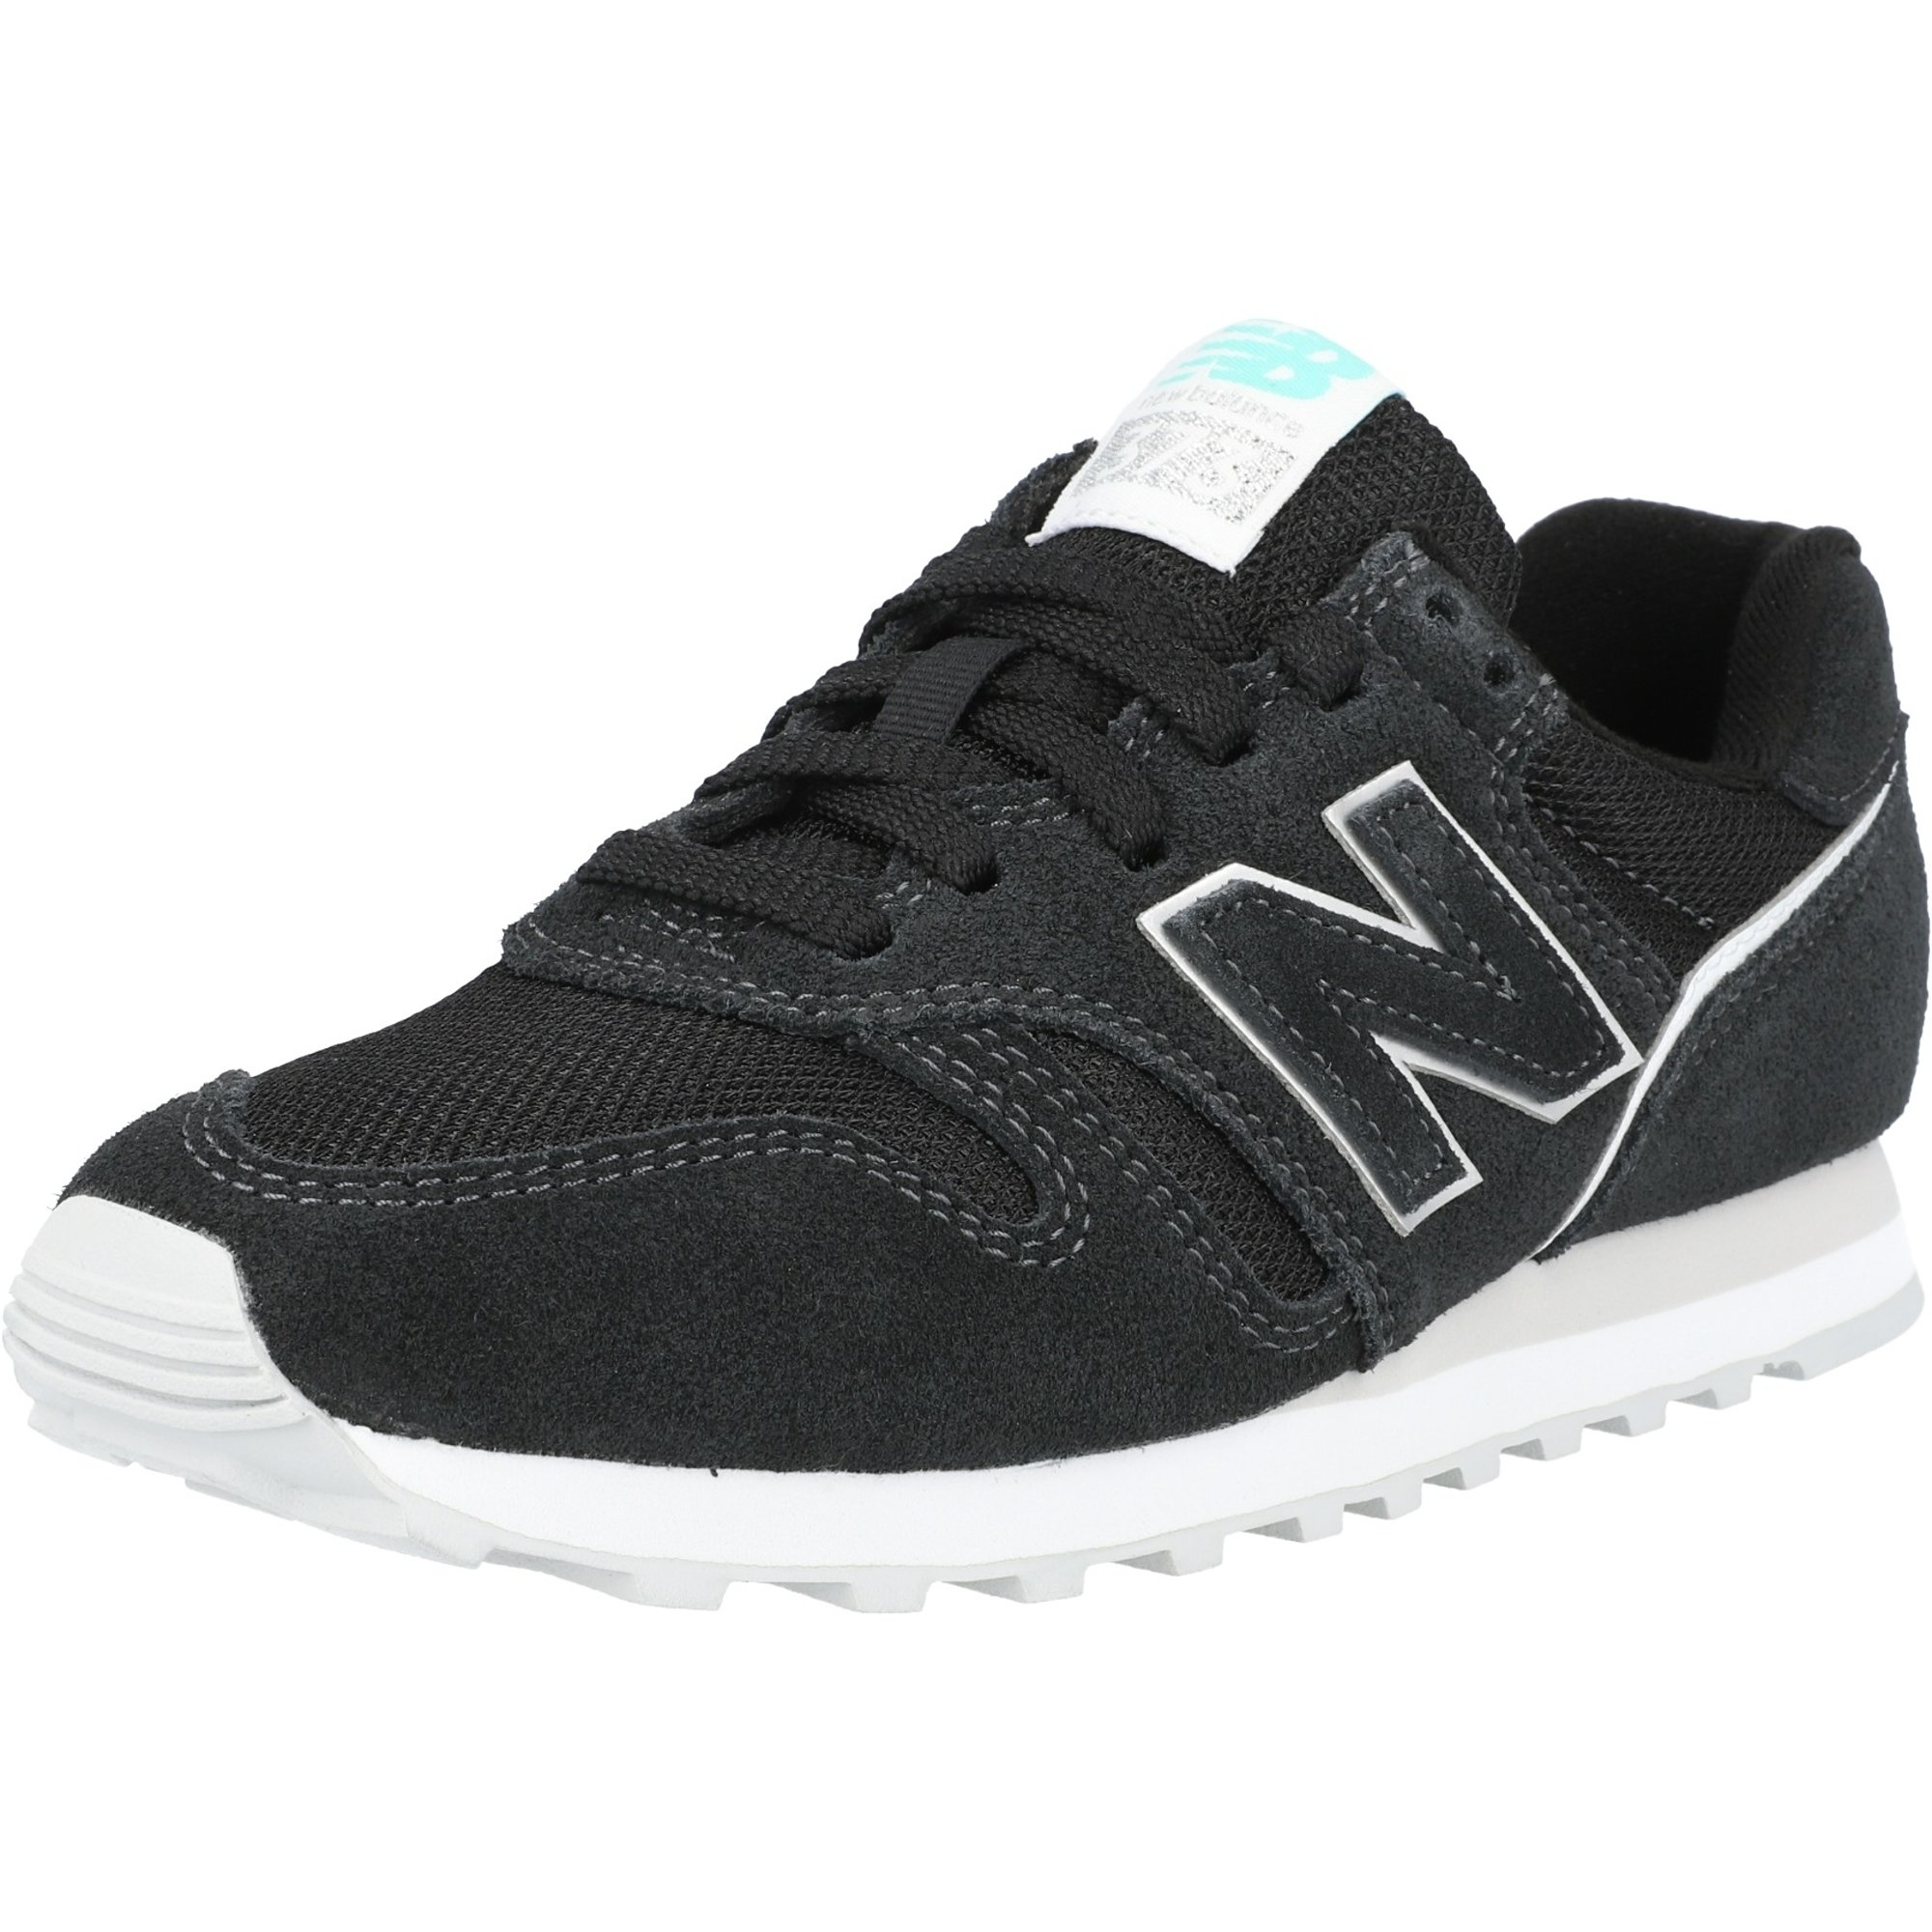 New Balance 373 Black/White Suede